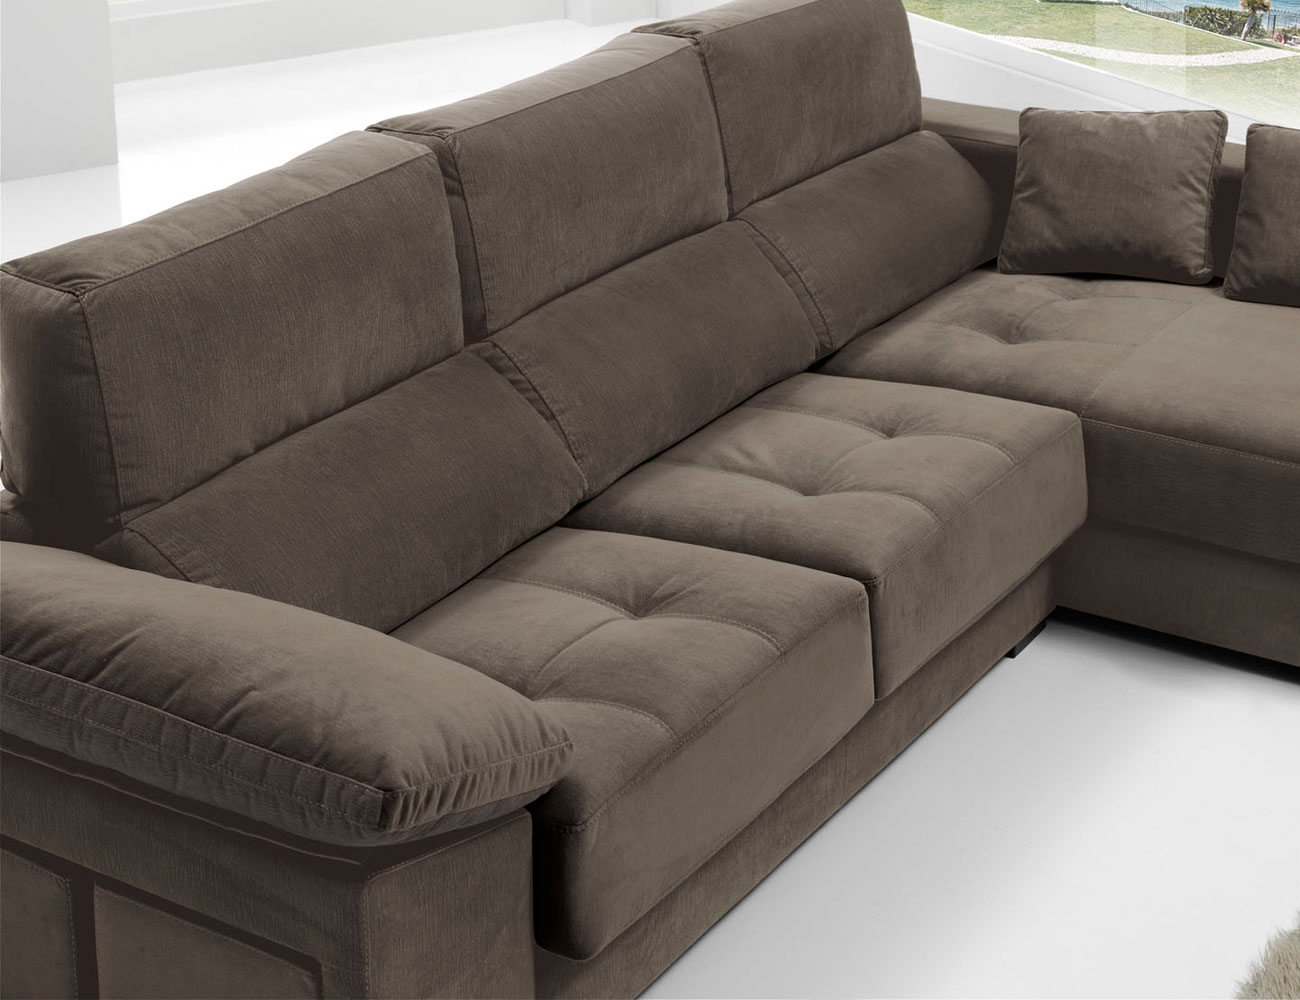 Sofa chaiselongue anti manchas bering pouf 275